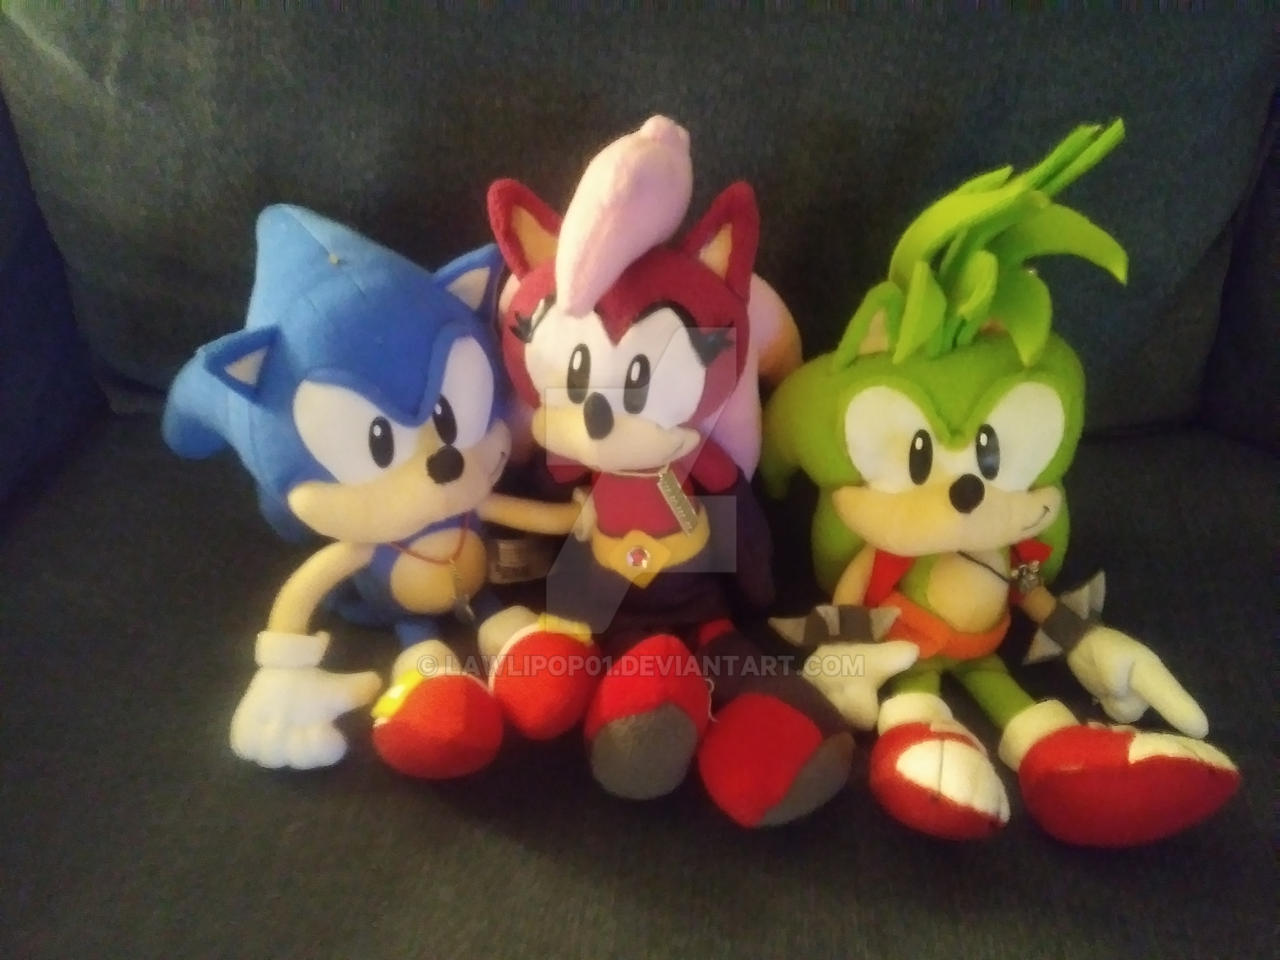 Sonic Underground Plushies By Lawlipop01 On Deviantart